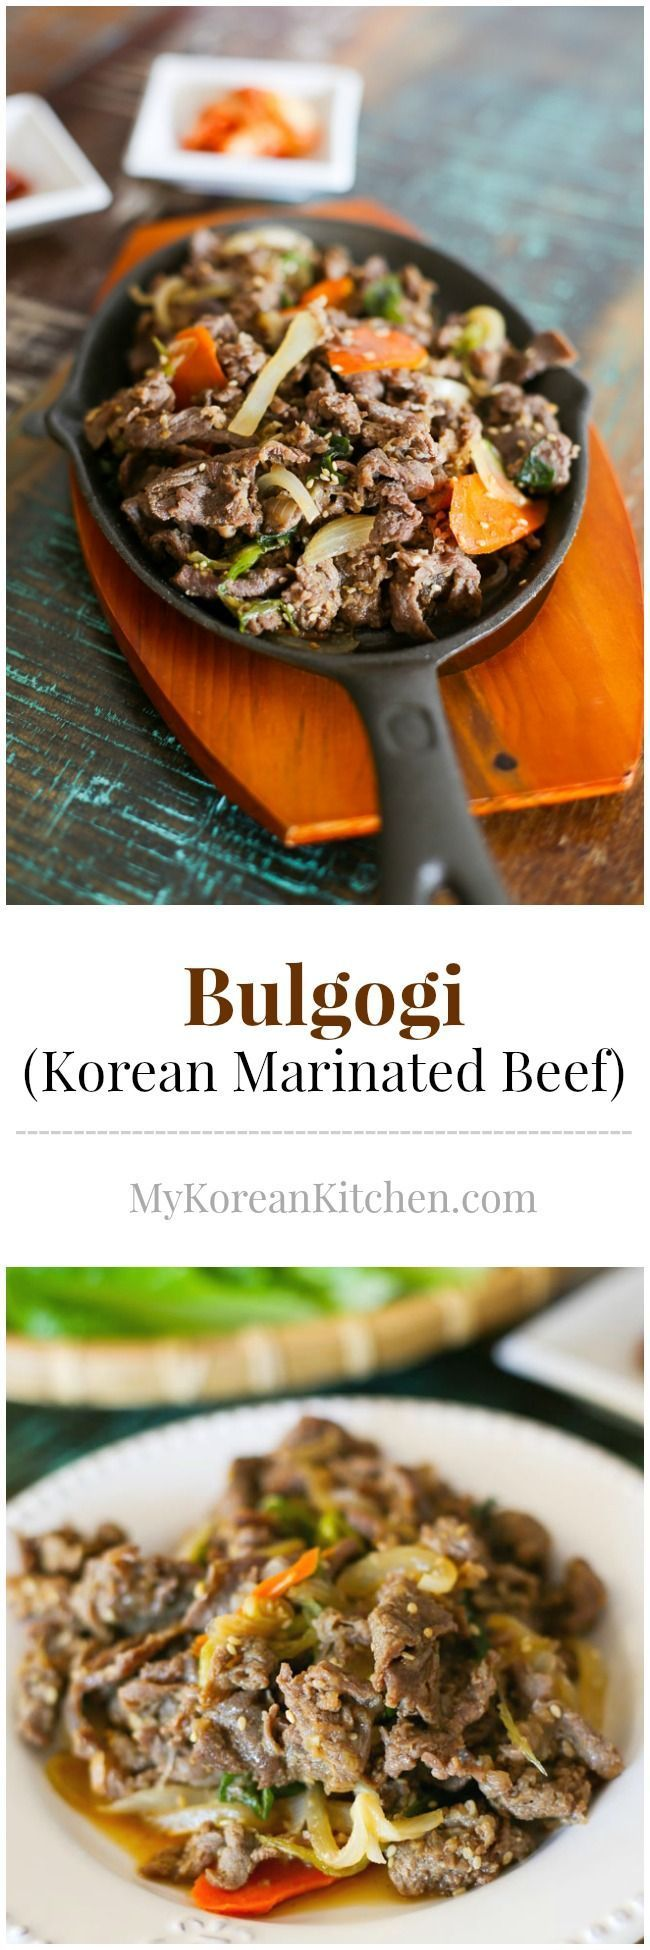 392 best korean food images on pinterest cooking food korean food bulgogi korean bbq beef forumfinder Image collections